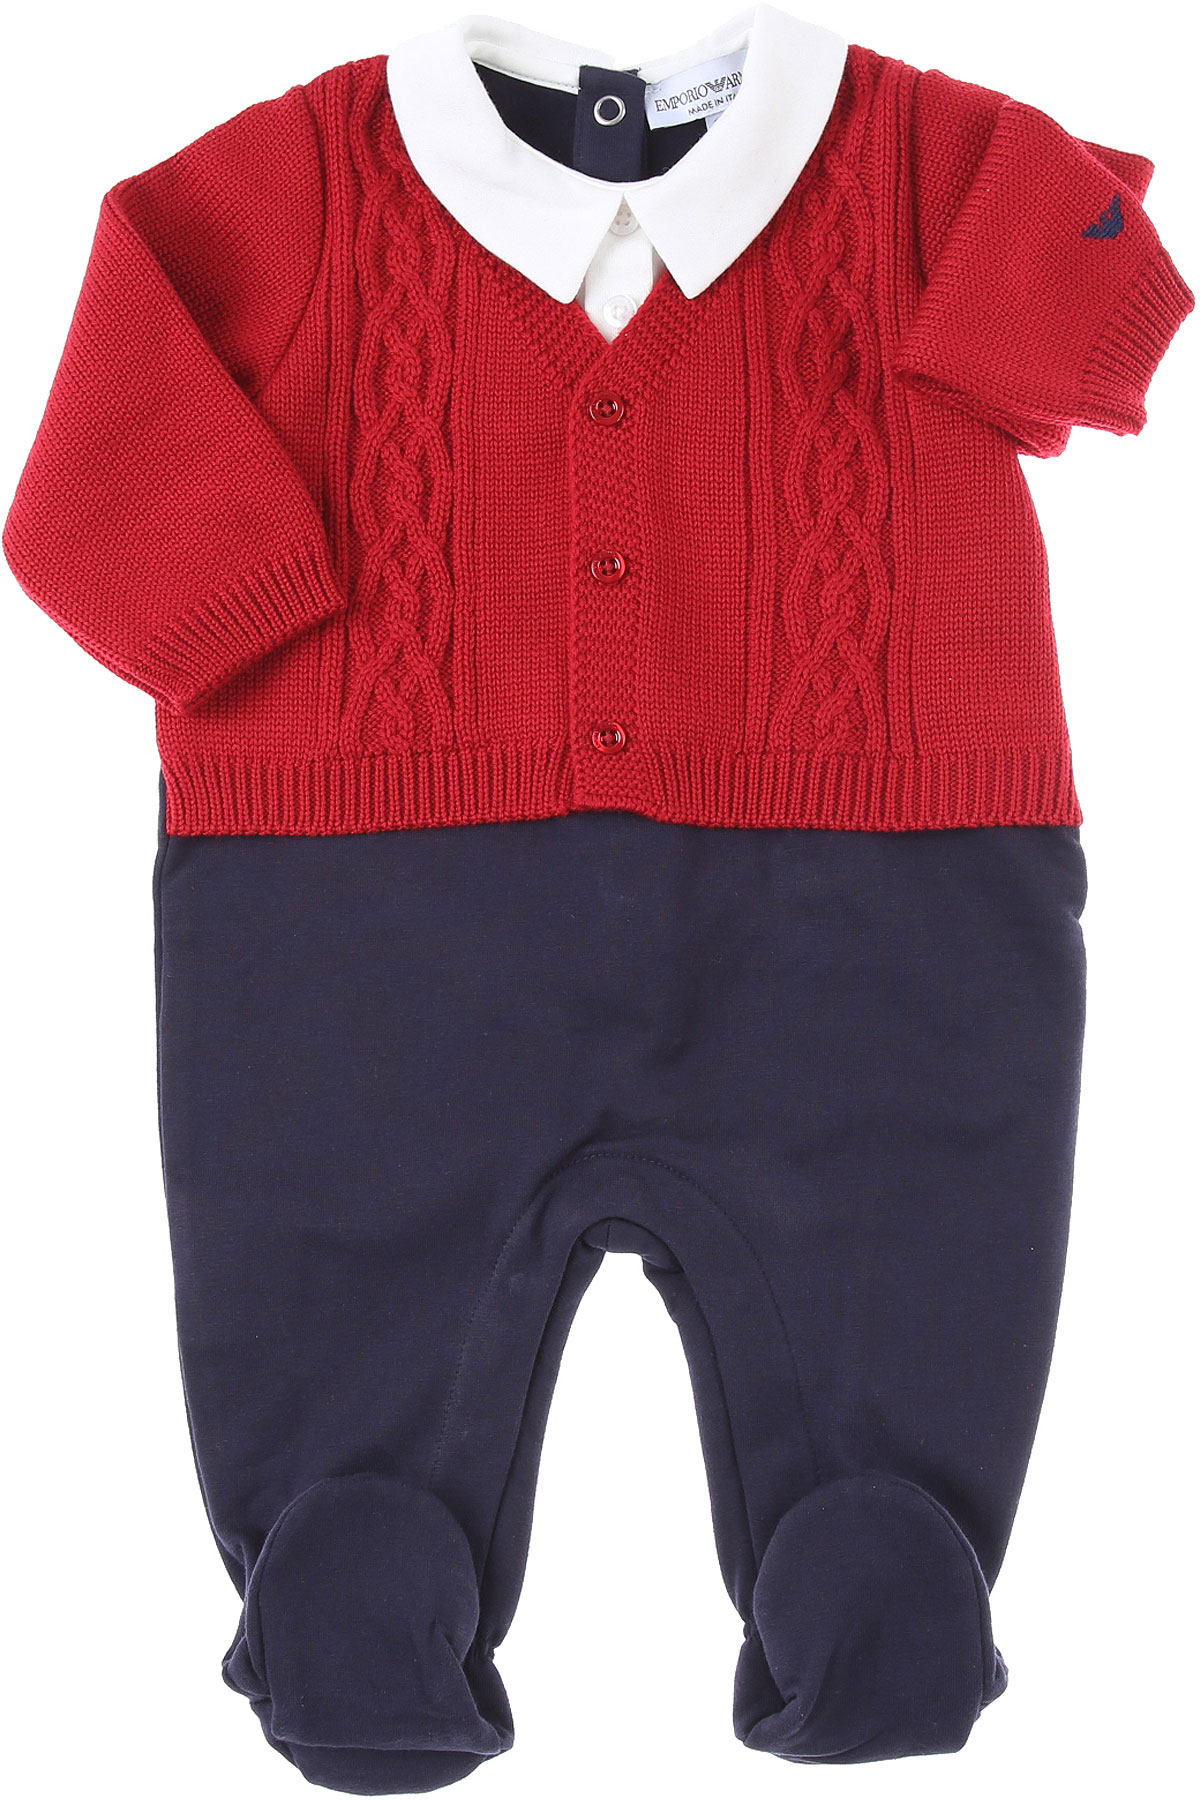 Emporio Armani Baby Bodysuits & Onesies for Boys On Sale, Red, Cotton, 2019, 1M 3M 6M